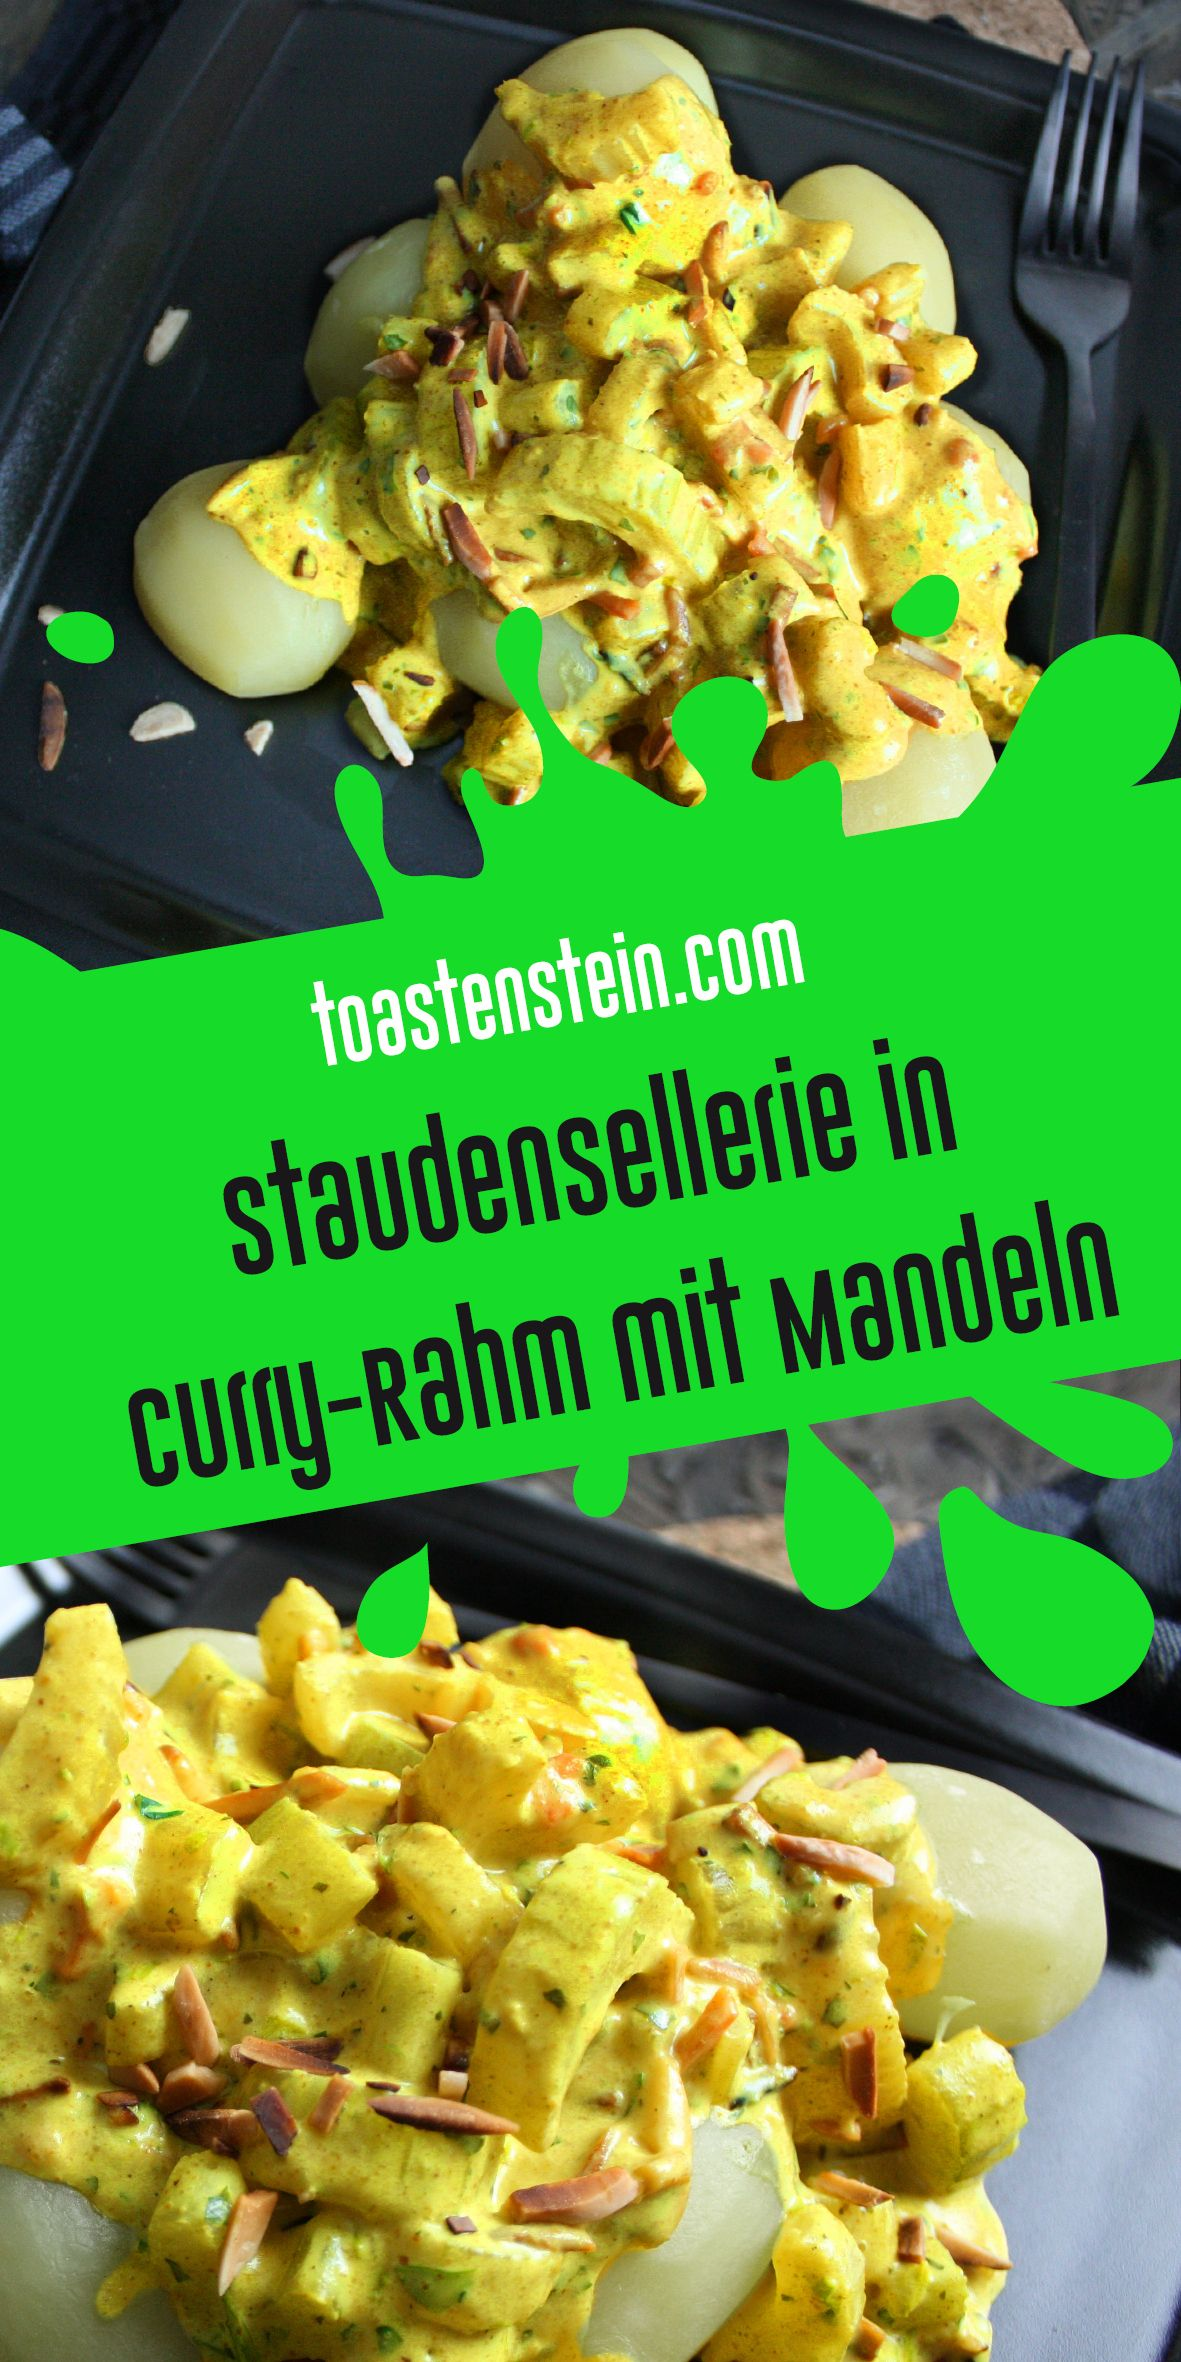 Staudensellerie in Curry-Rahm mit Mandeln | Toastenstein.com